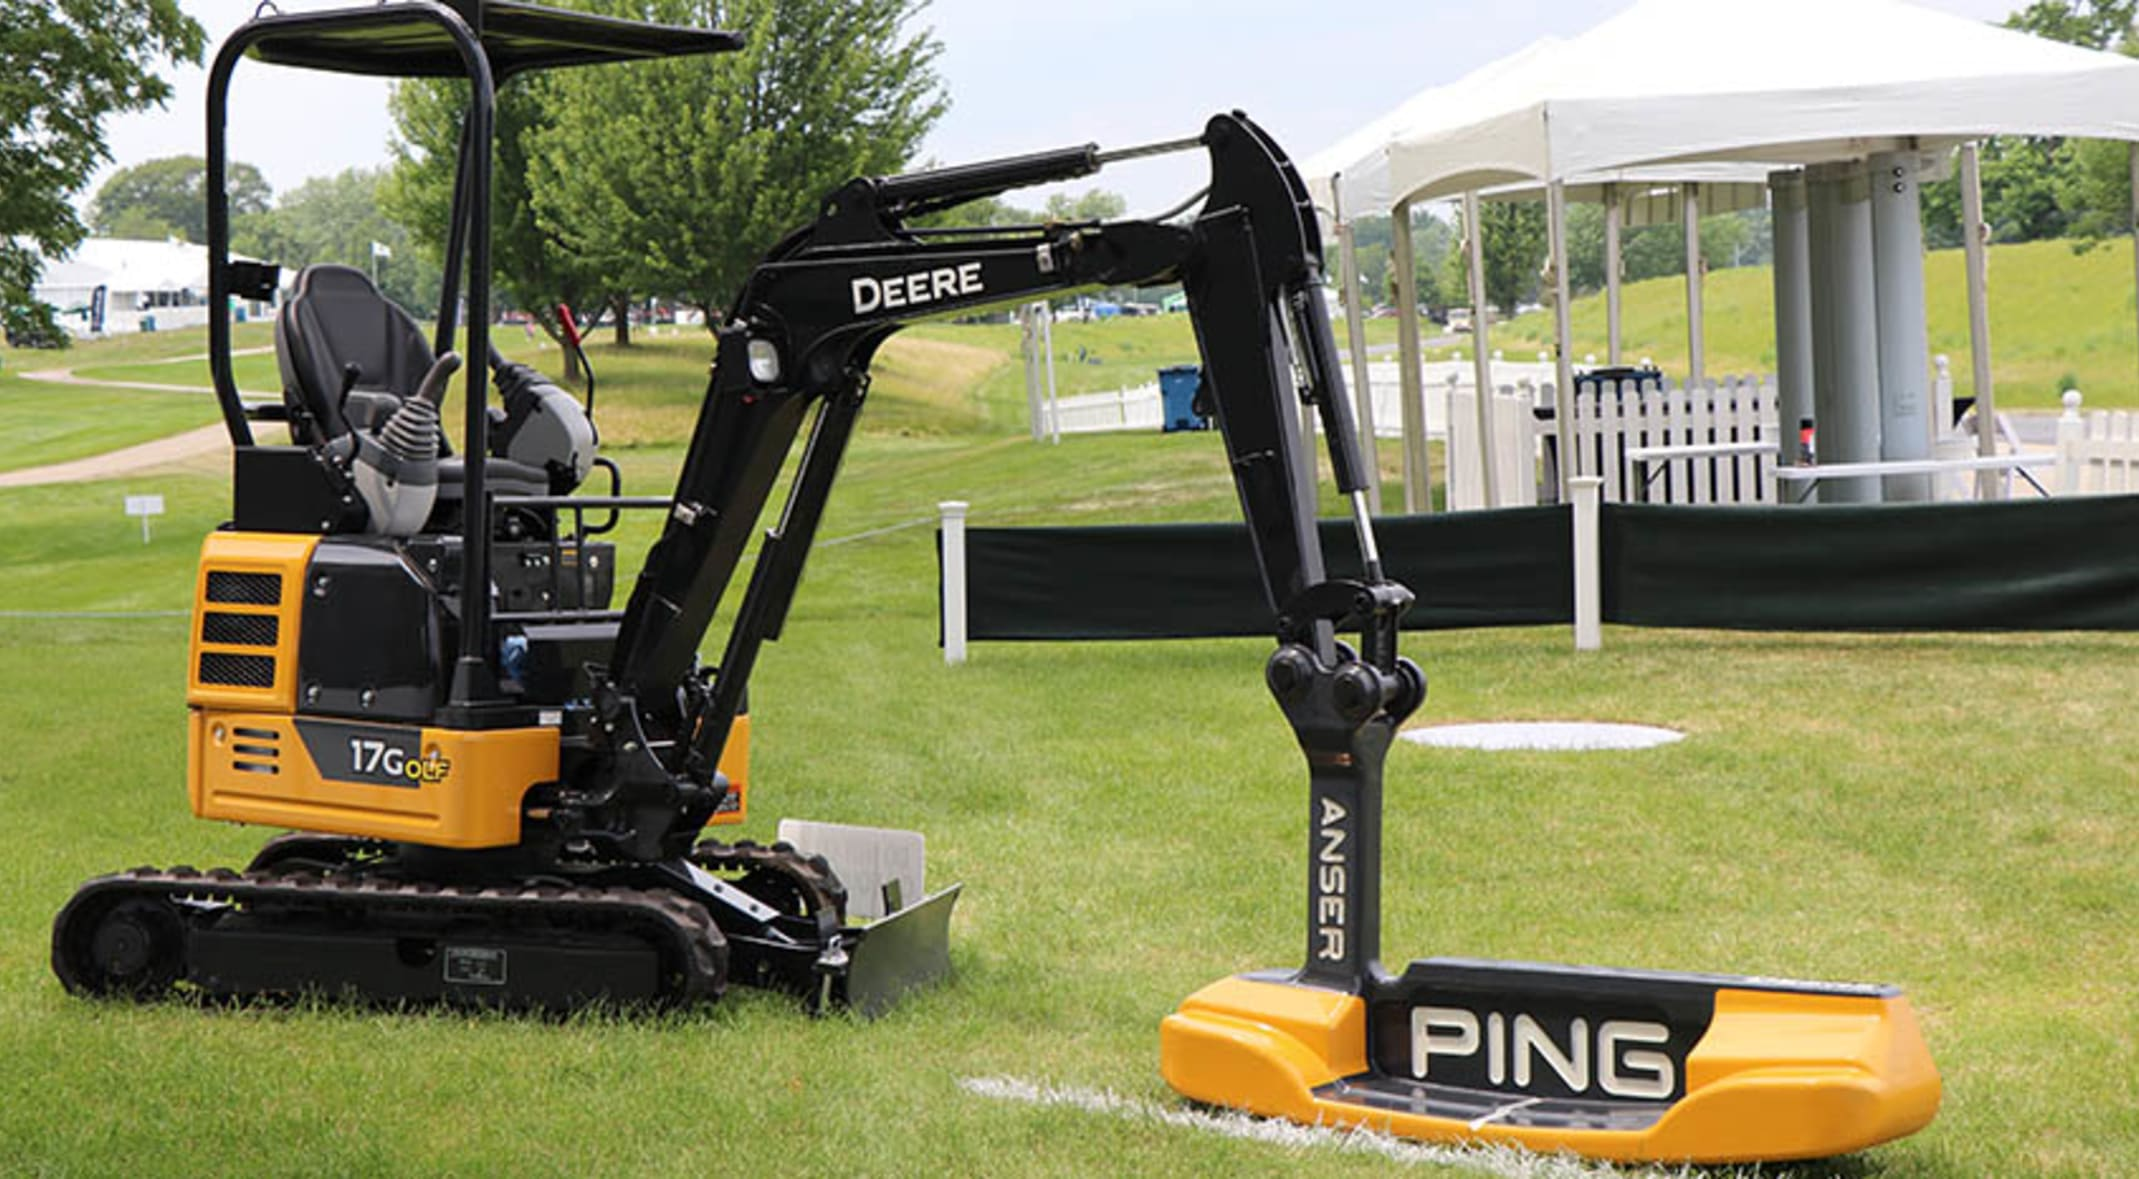 Https Email Johndeere Com >> John Deere Ping Collaborate To Design The Largest Anser